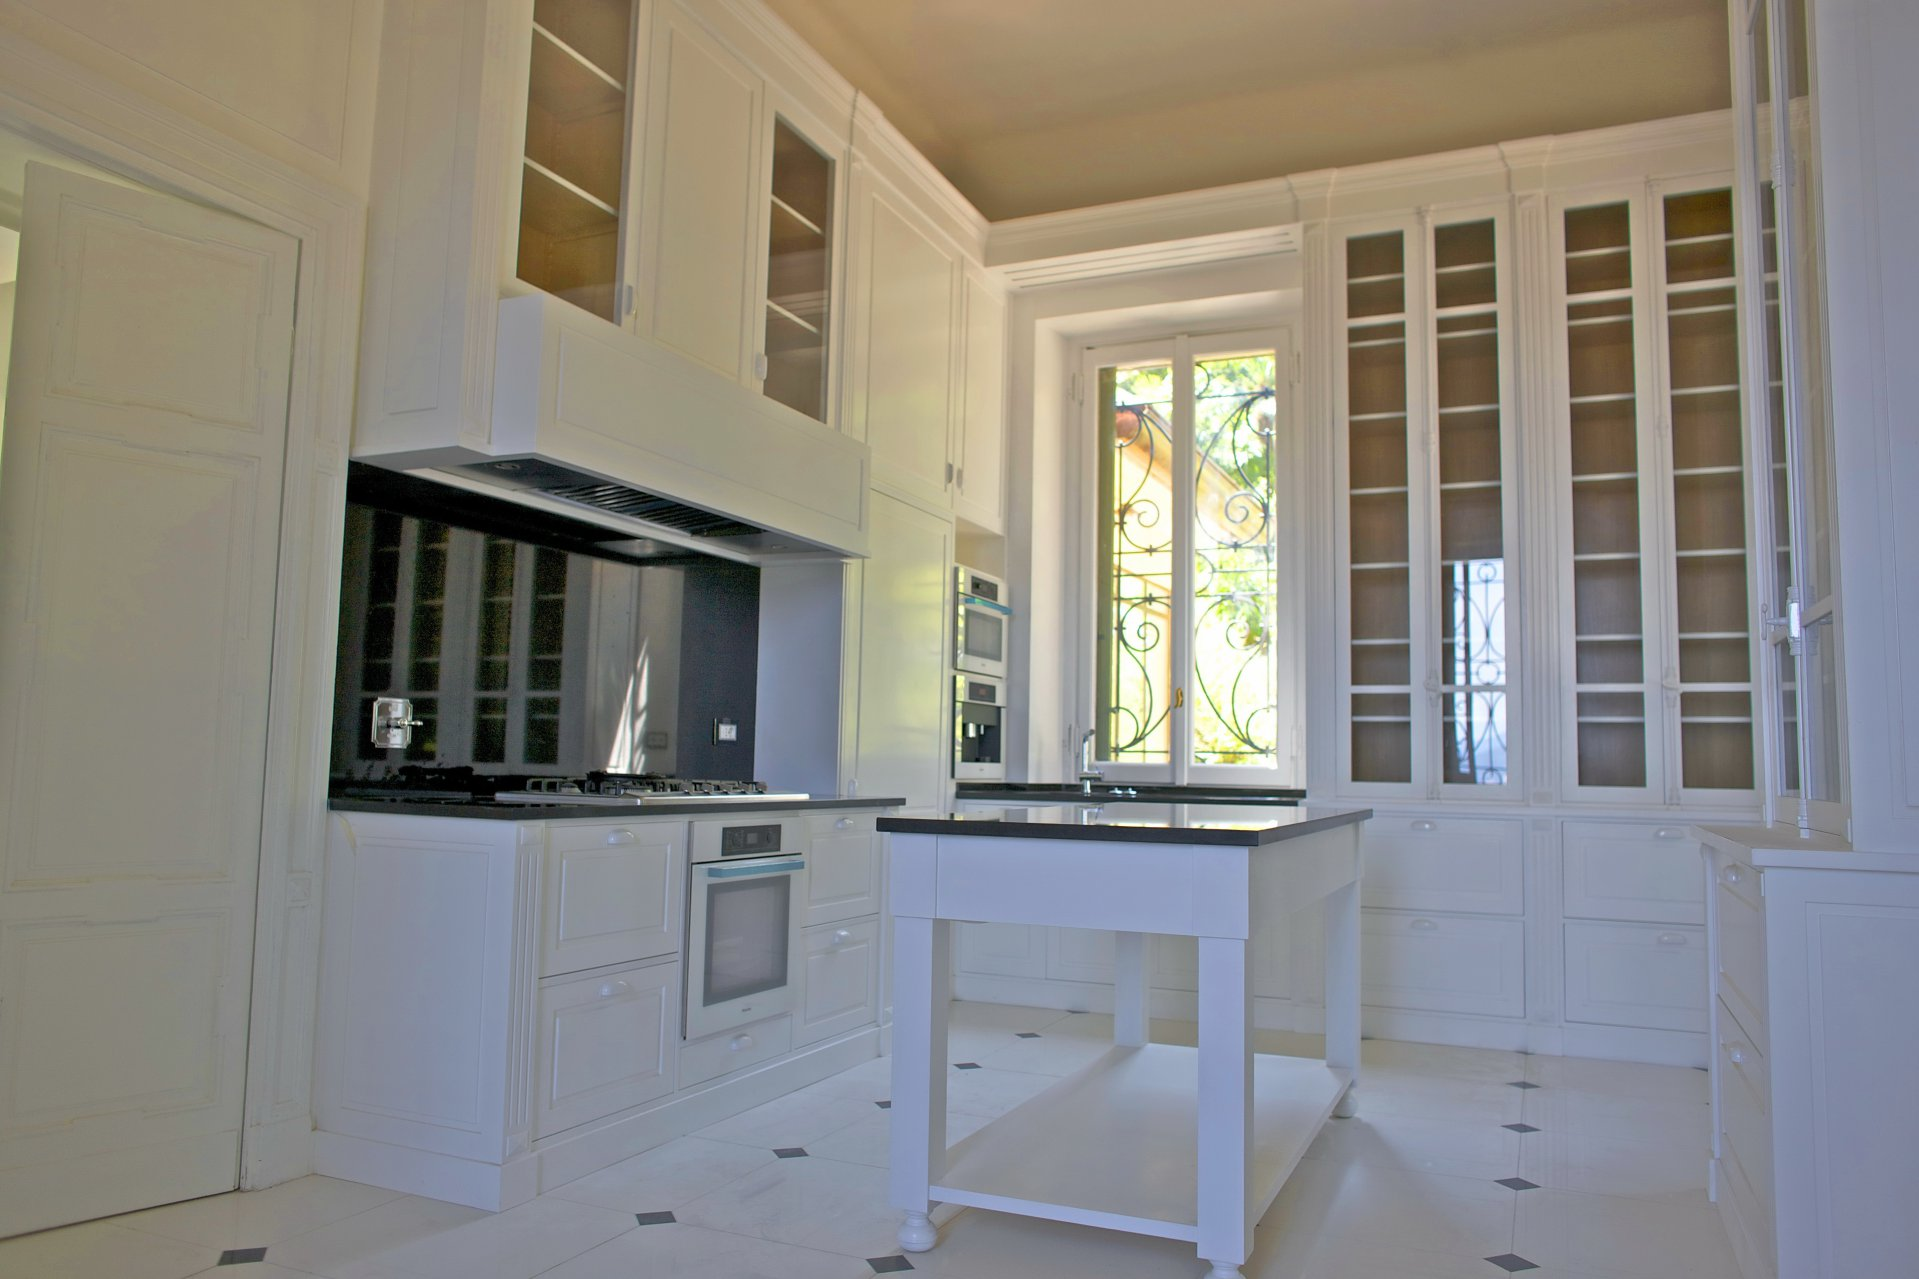 Prestigious liberty villa for sale in Stresa centre - kitchen